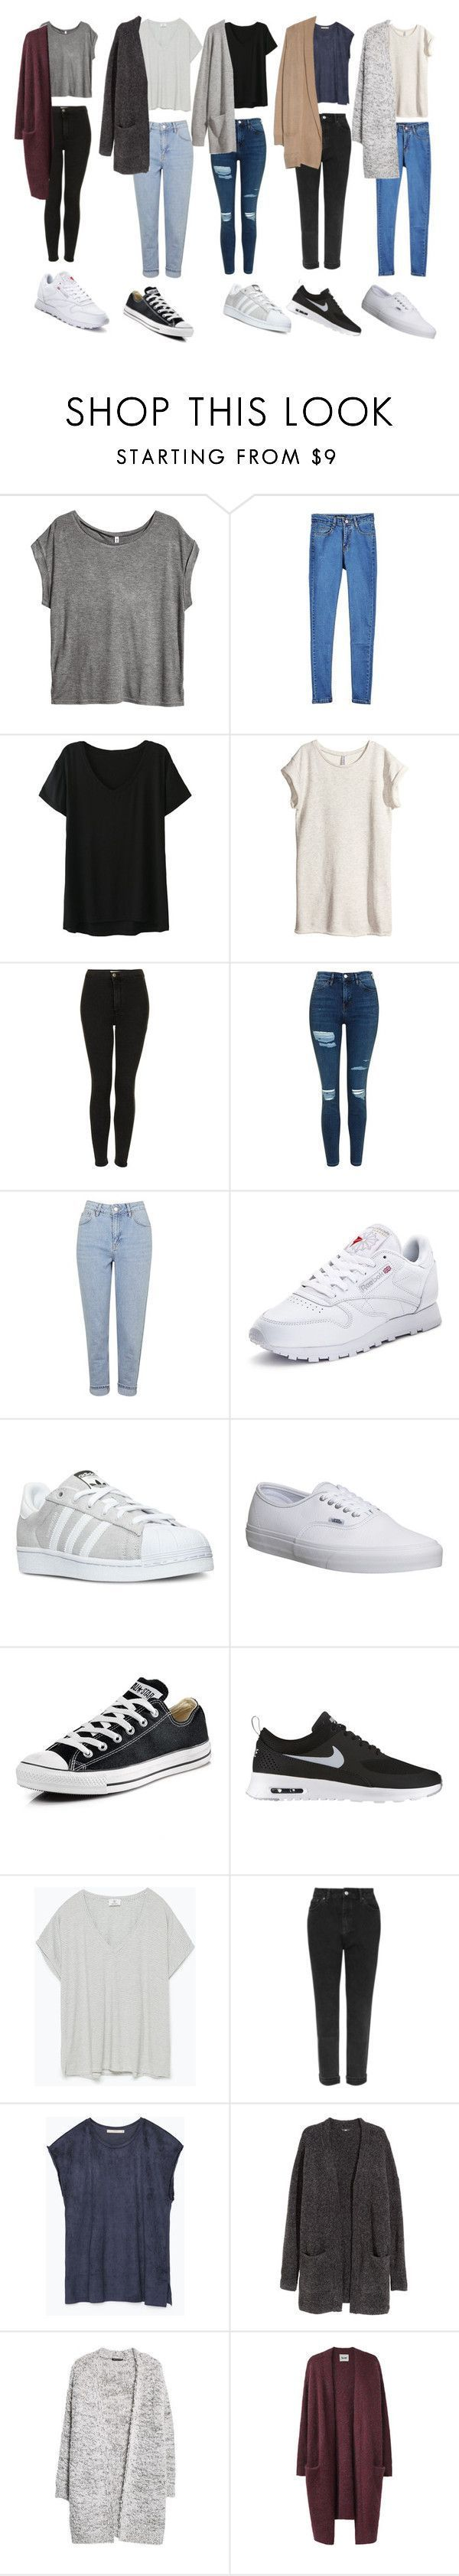 """""""Outfit of the week OOTW"""" by leilabas �� liked on Polyvore featuring H&M, Topshop, Reebok, adidas, Vans, Converse, NIKE, Zara, MANGO and Acne Studios"""